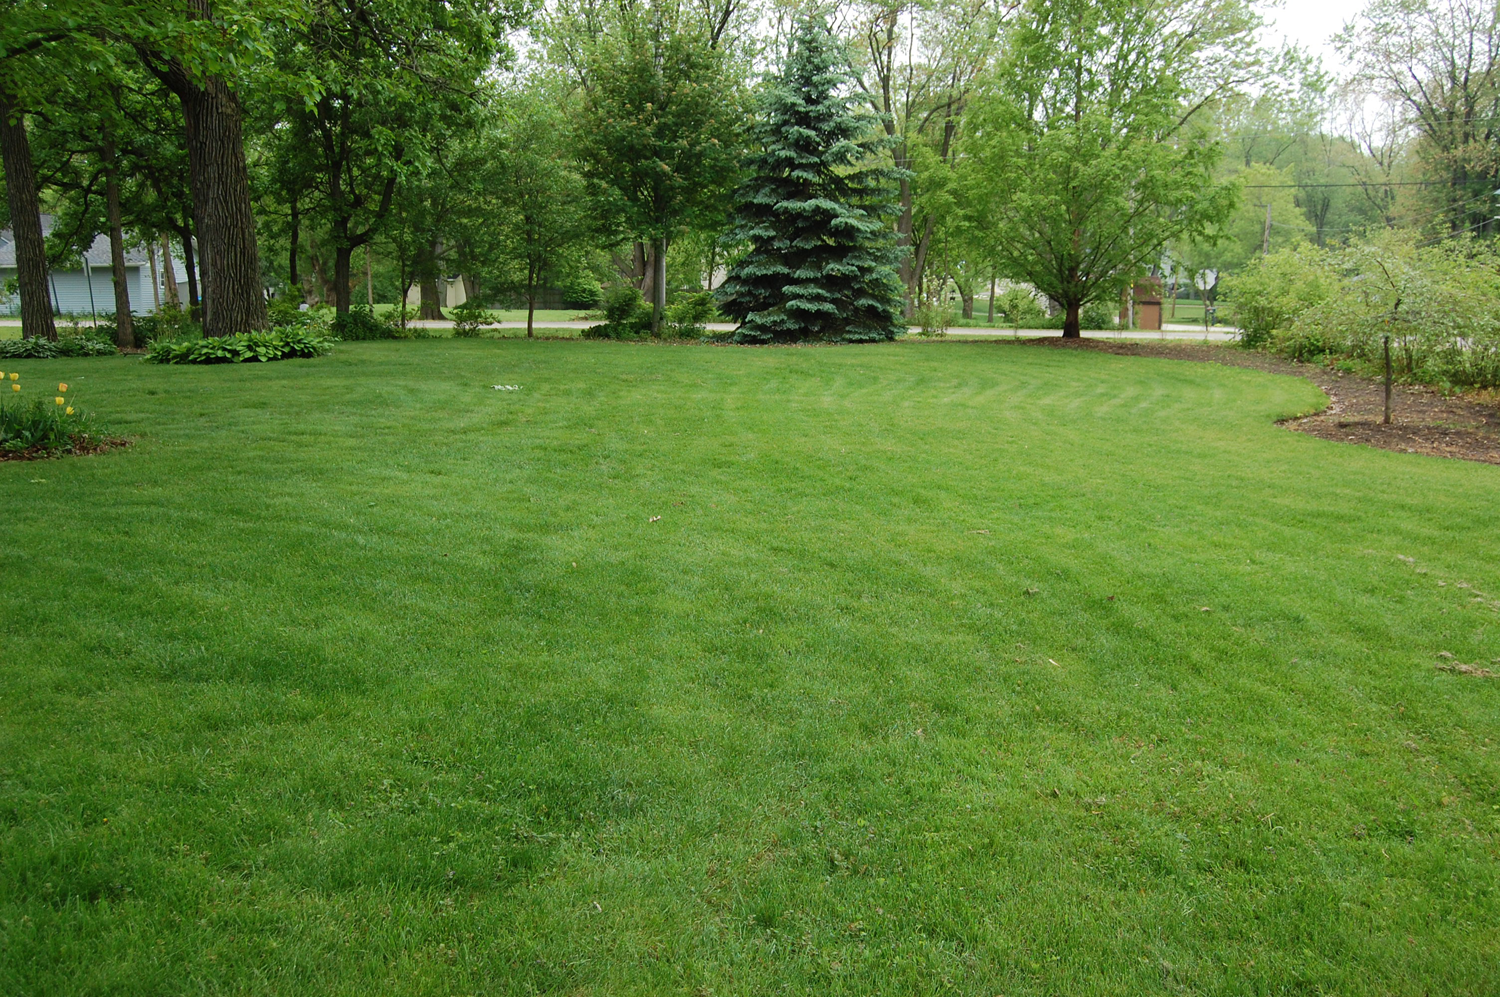 Home lindstrom lawn care and landscaping antioch il Yard and garden